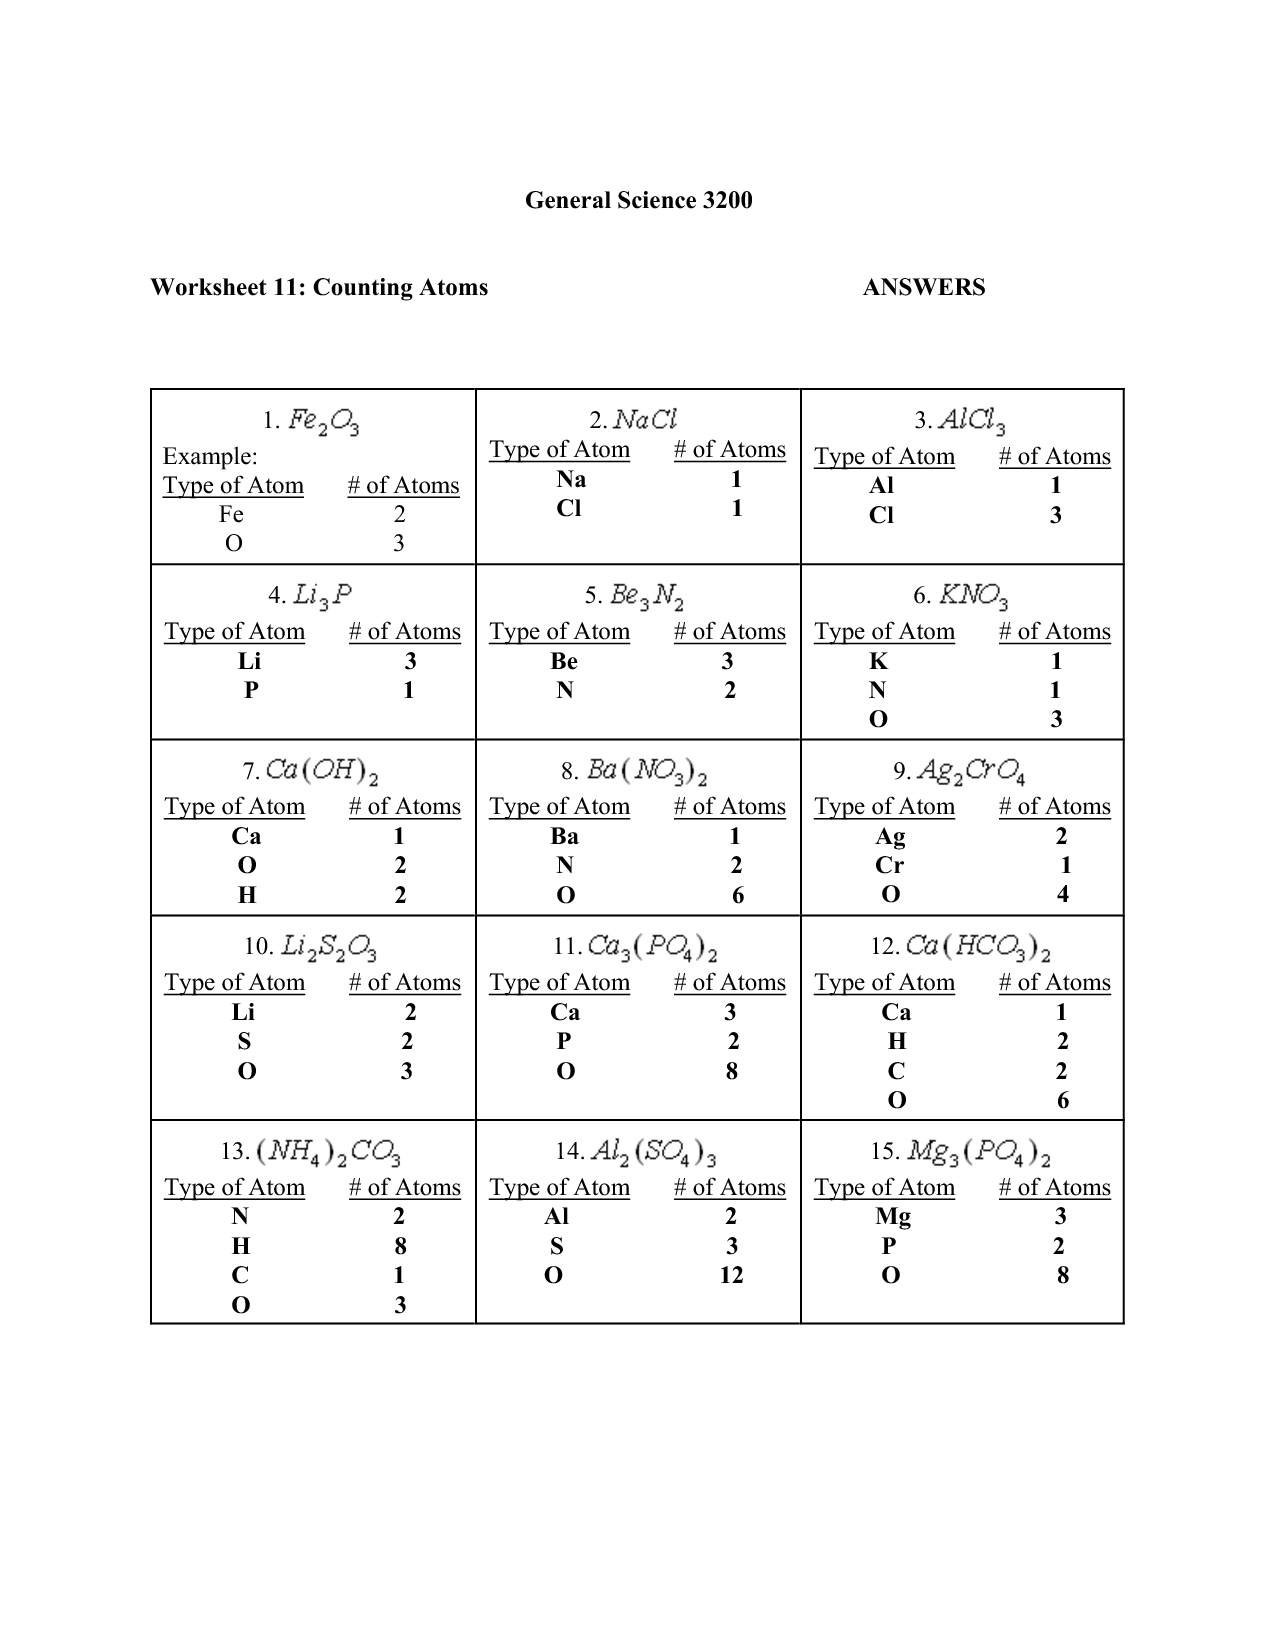 Worksheets Counting Atoms Worksheet Answers Cheatslist Free Worksheets For Kids Amp Printable